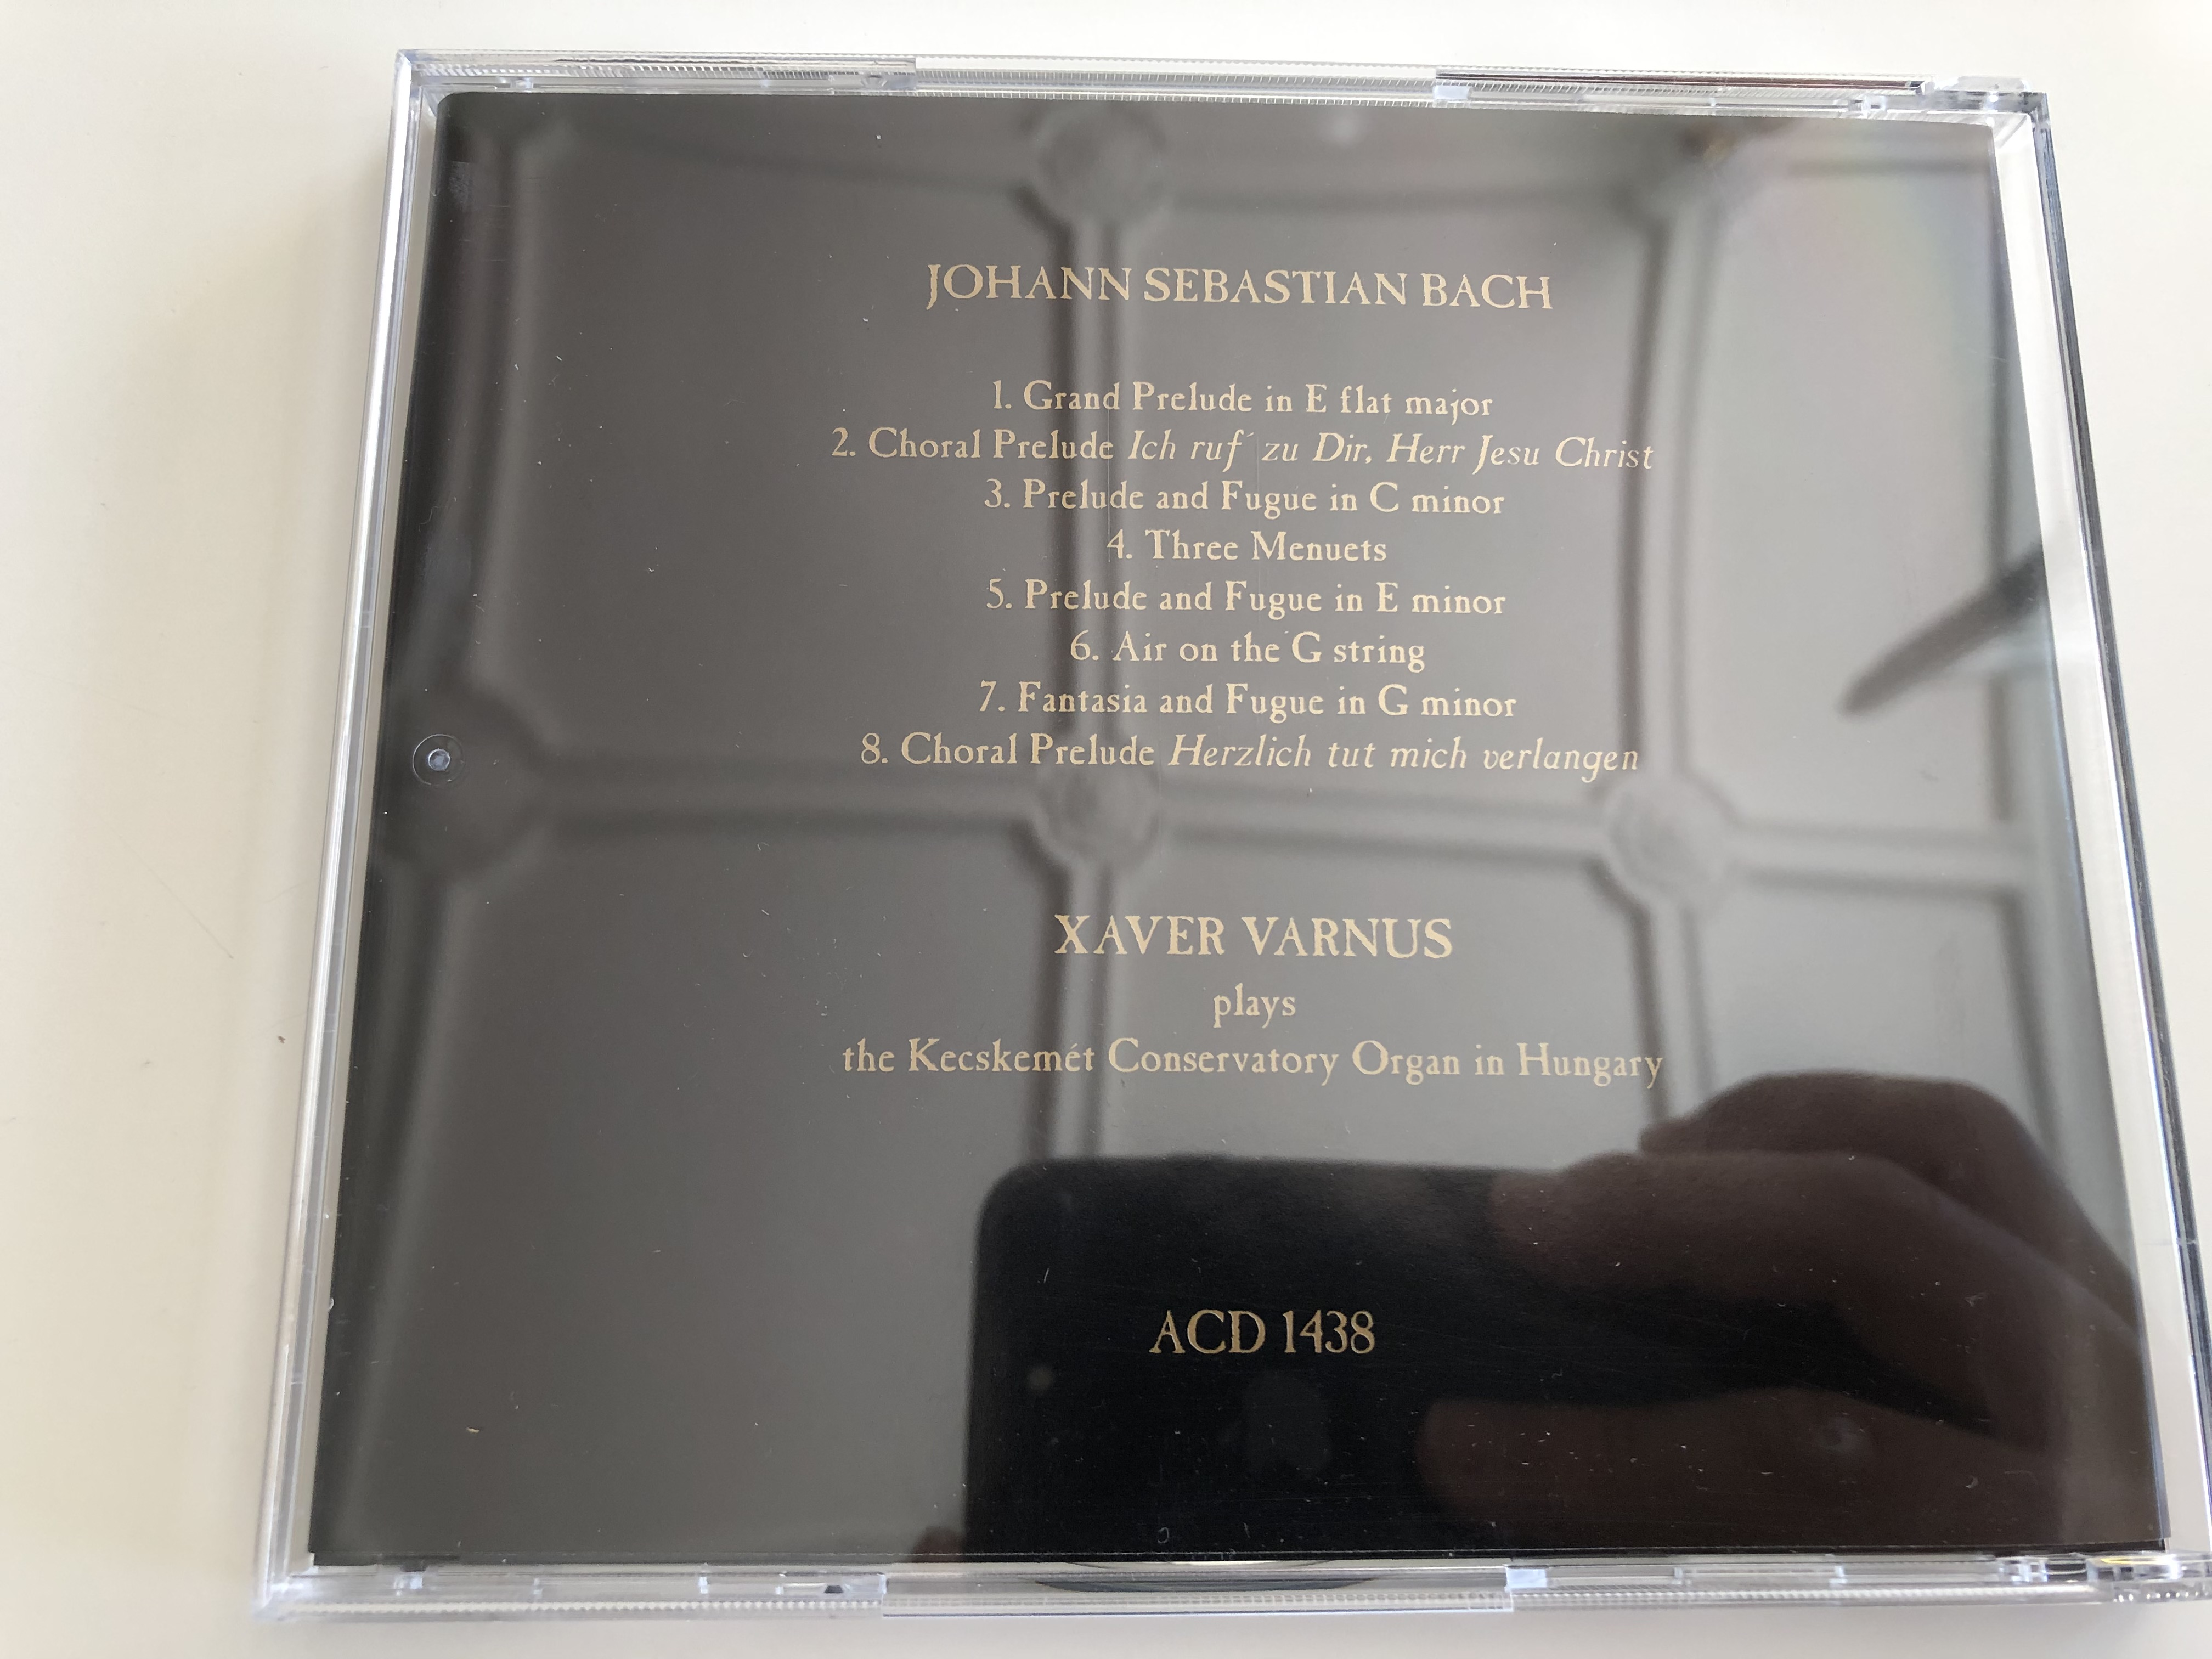 xaver-varnus-the-legendary-organist-plays-bach-audio-cd-1994-great-prelude-in-e-flat-major-prelude-fugue-in-e-minor-fantasia-fugue-in-g-minor-air-on-the-g-string-recorded-on-the-kecskem-t-conservatory-organ-in-hung-5177378-.jpg